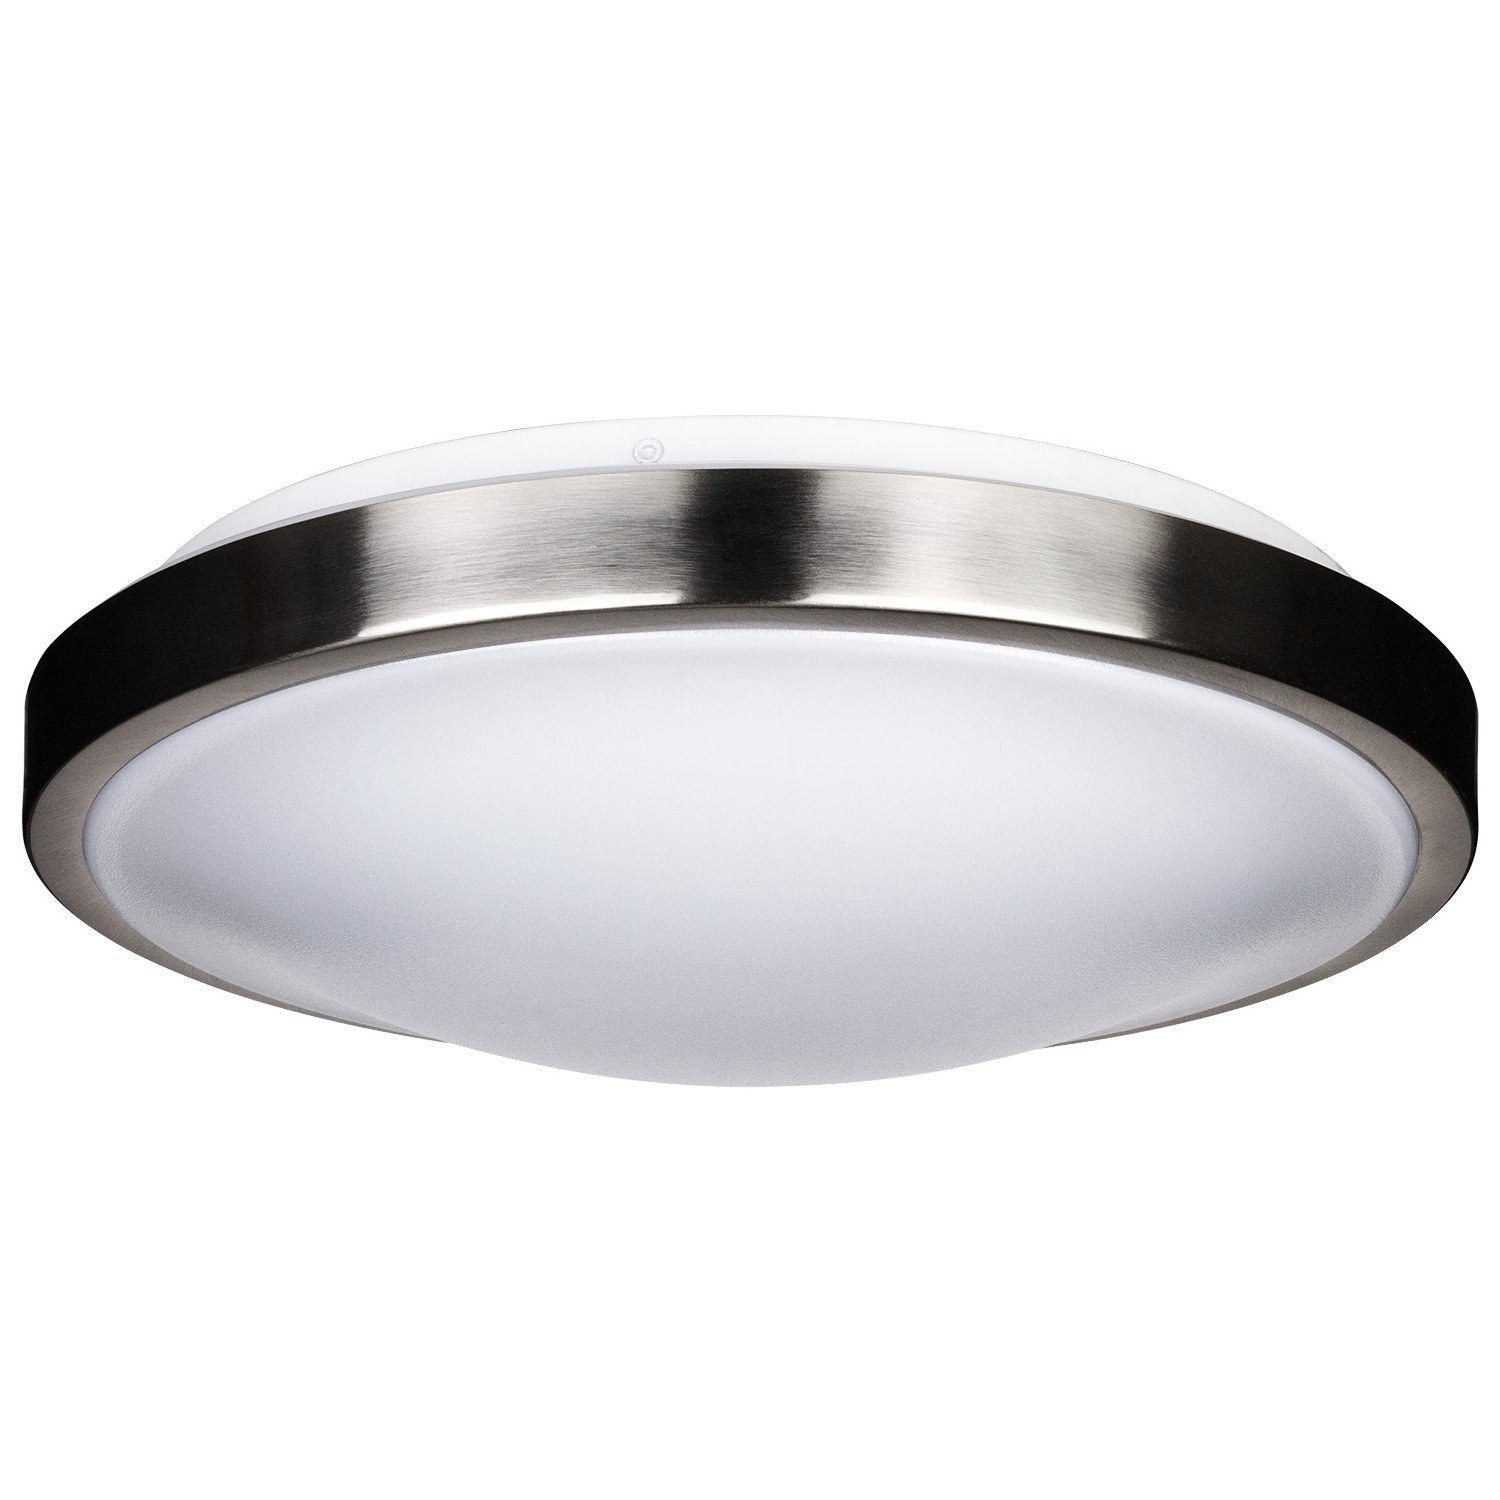 mount fixture star ceiling light flush lights led energy kichler